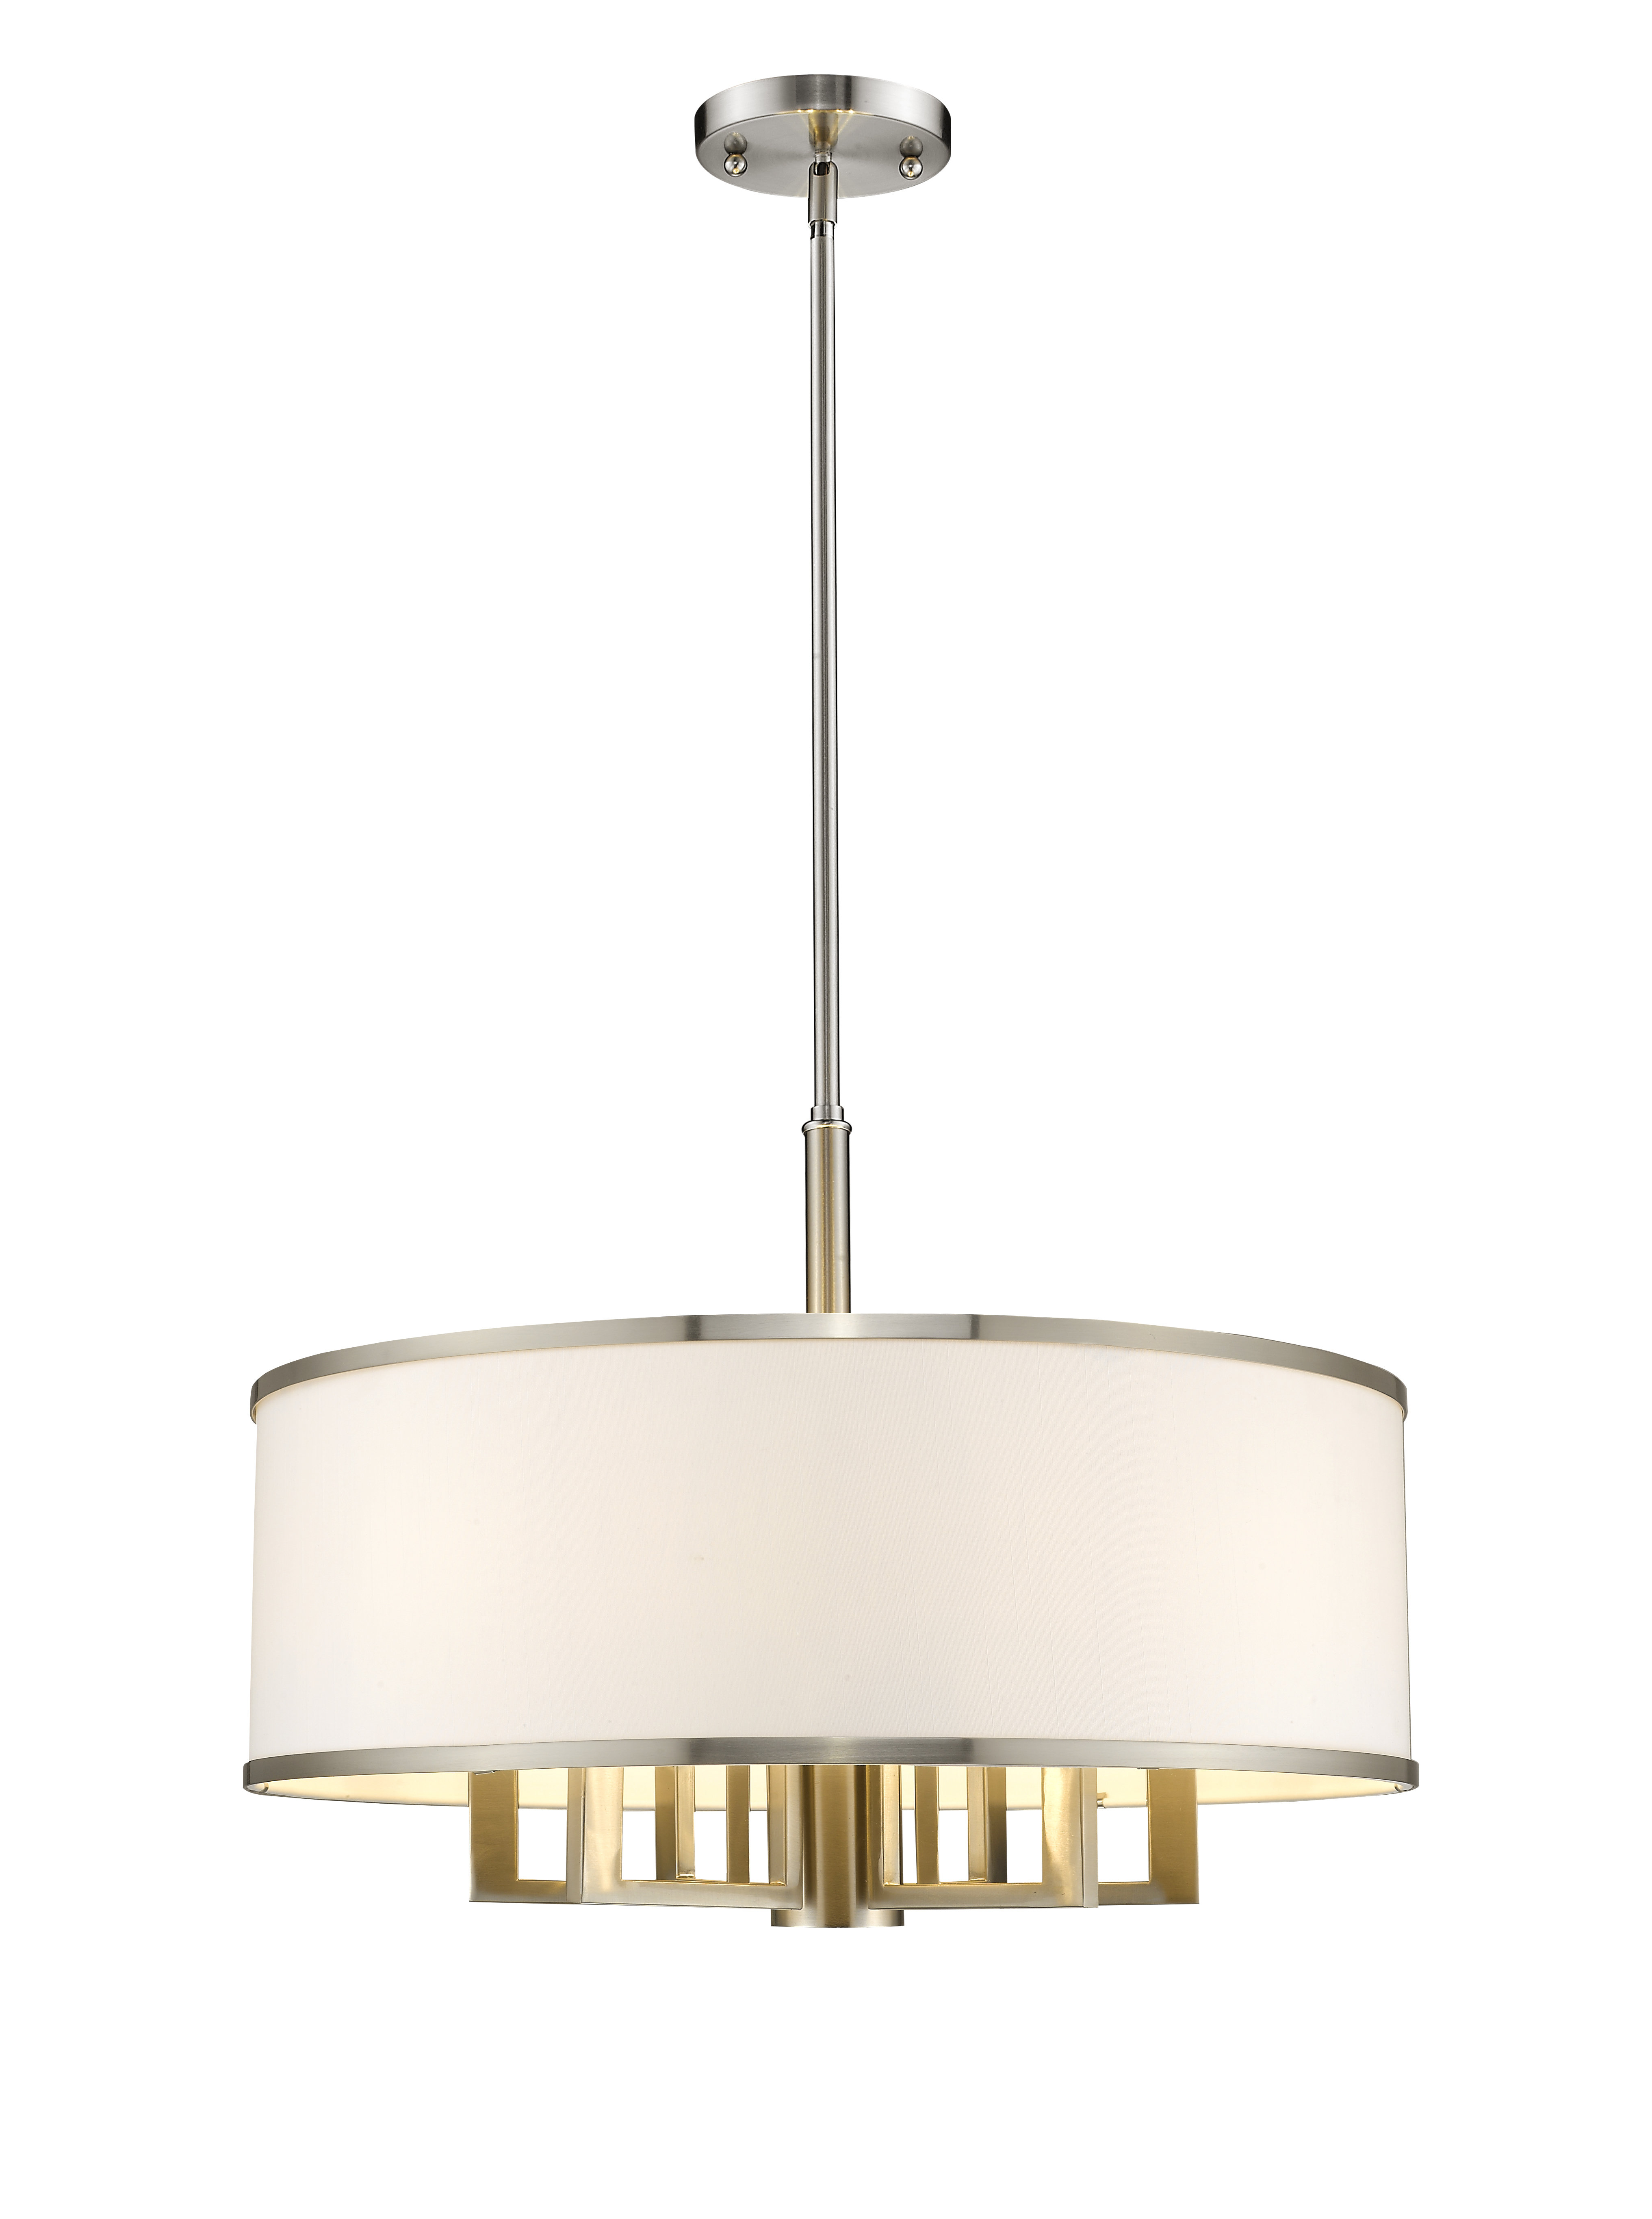 Breithaup 7 Light Drum Chandelier Within Friedland 3 Light Drum Tiered Pendants (View 13 of 30)